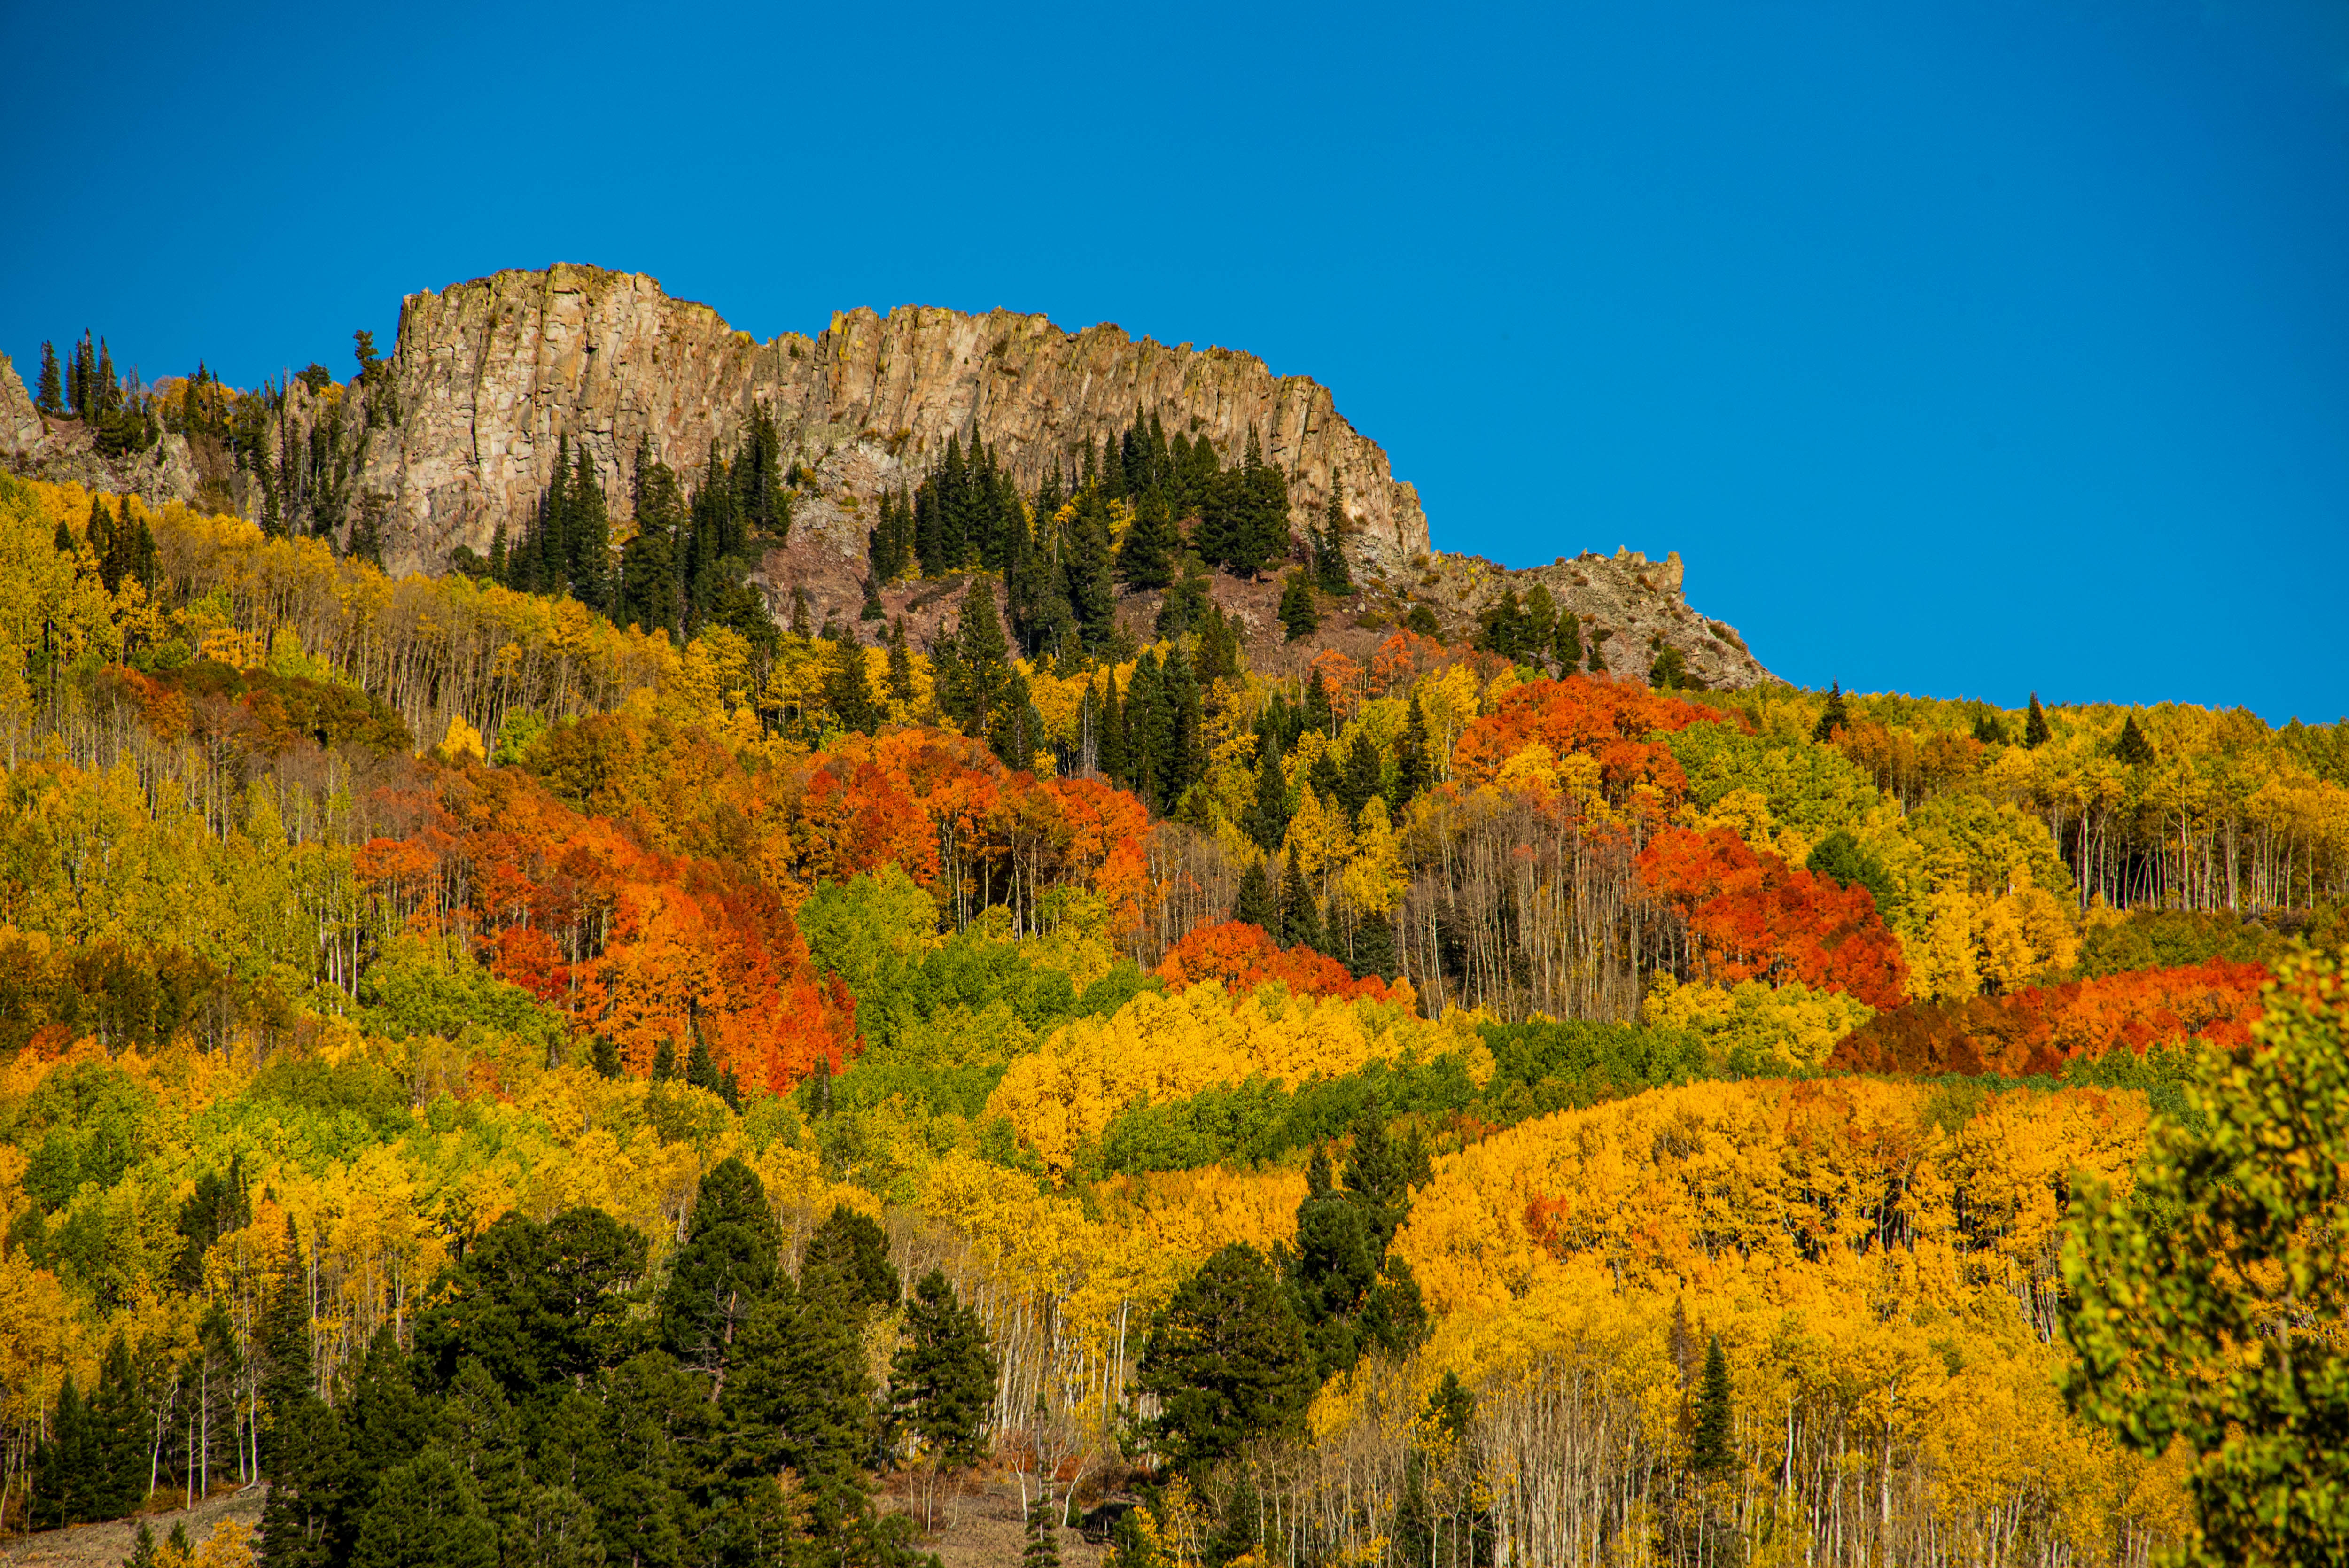 A rock outcropping crowns a forested ridge resplendent in fall colors.